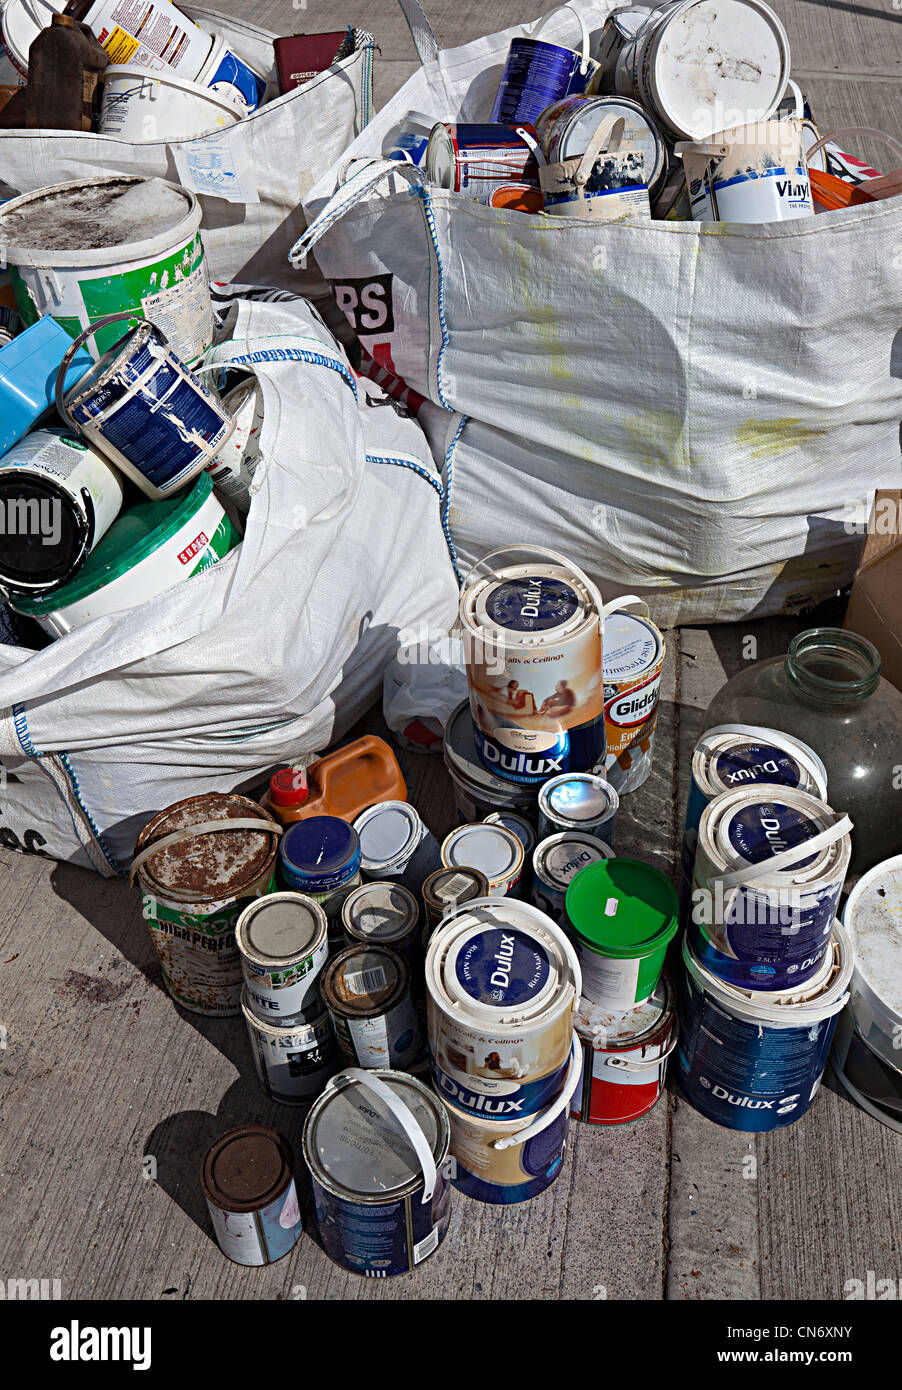 Paint cans thrown away Wales, UK Stock Photo